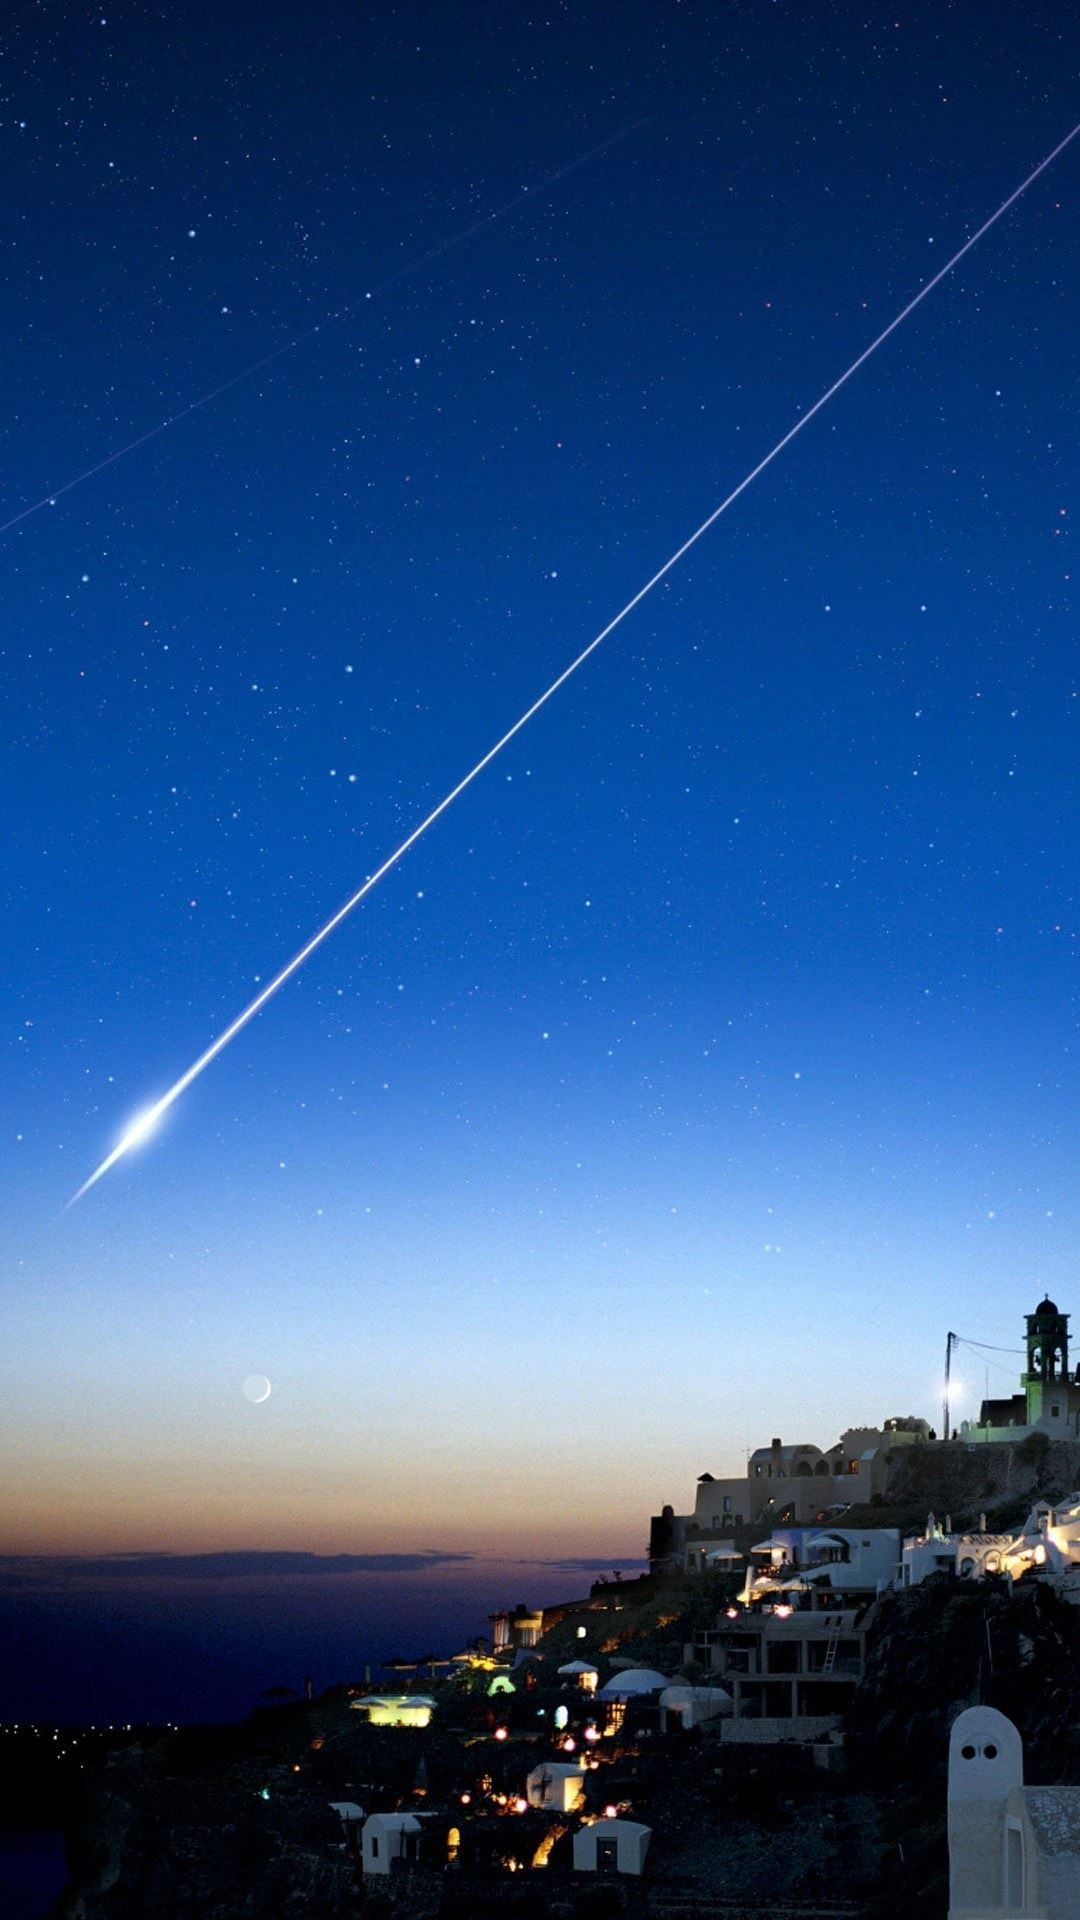 1080x1920 Shooting Star Over Cliff City iPhone 6 Plus HD Wallpaper ...